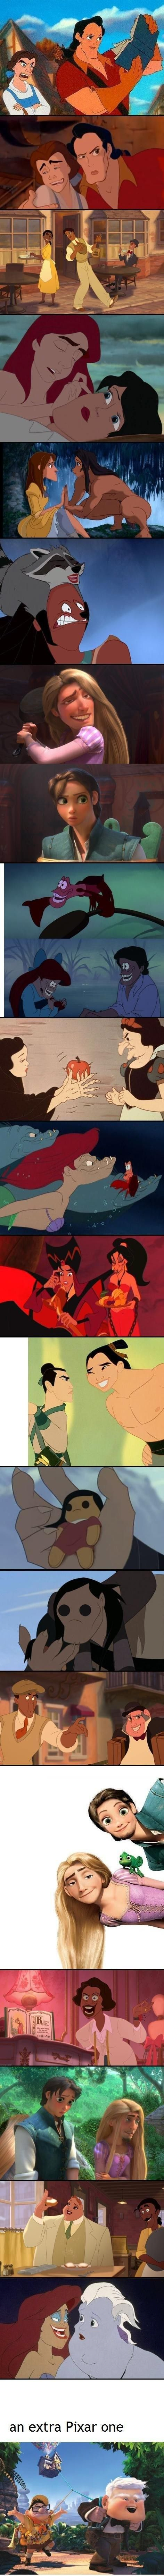 Disney Face Swaps ... Favorites are the Tangled ones and the Tarzan one... Hahaha laughed way too hard